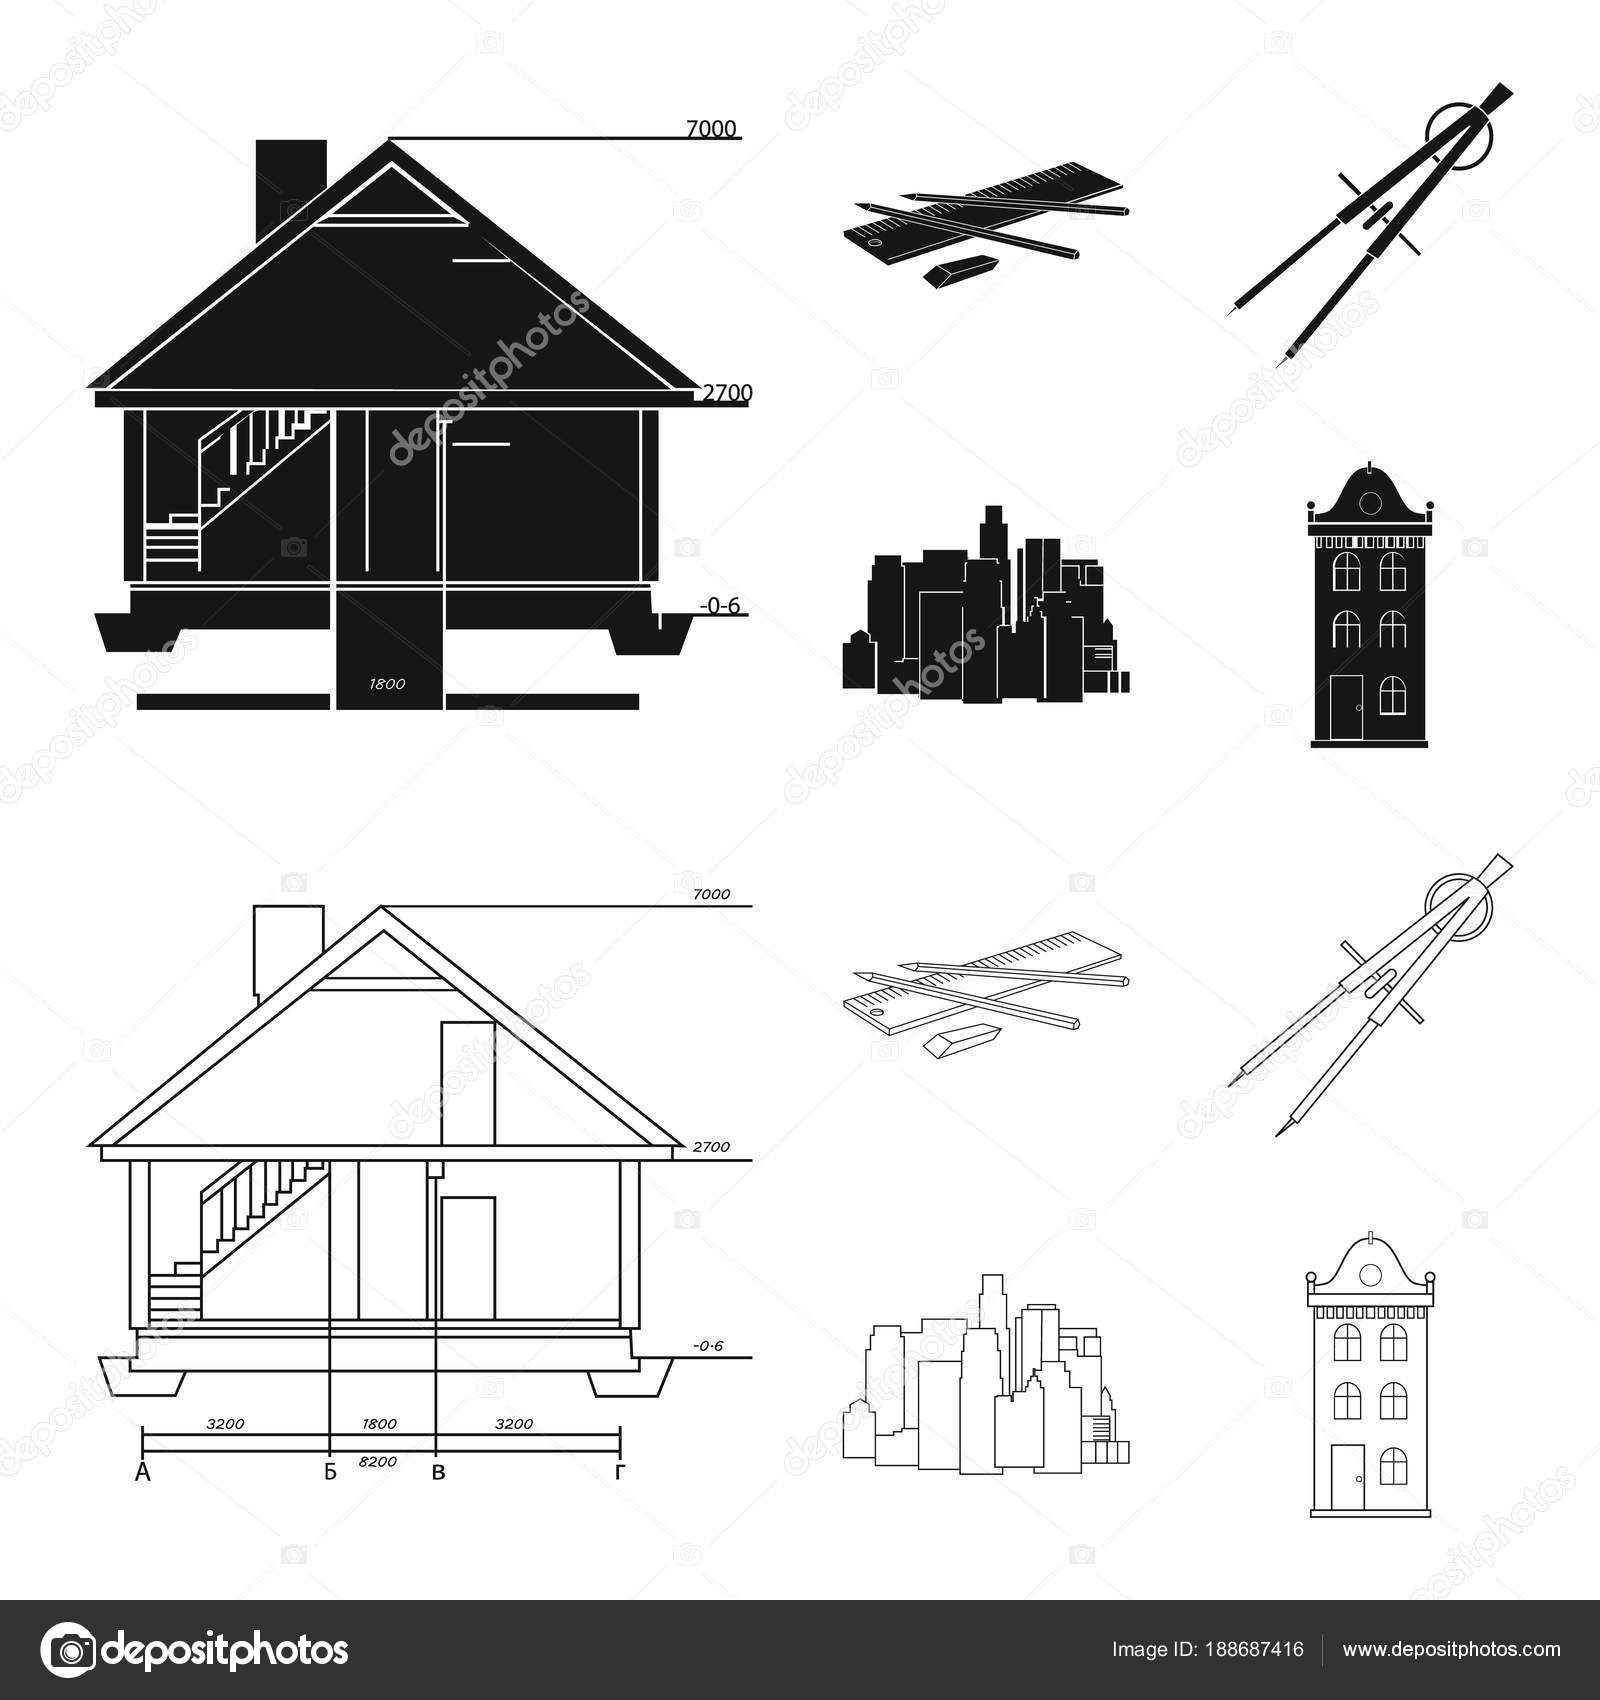 Drawing Accessories Metropolis House Model Architecture